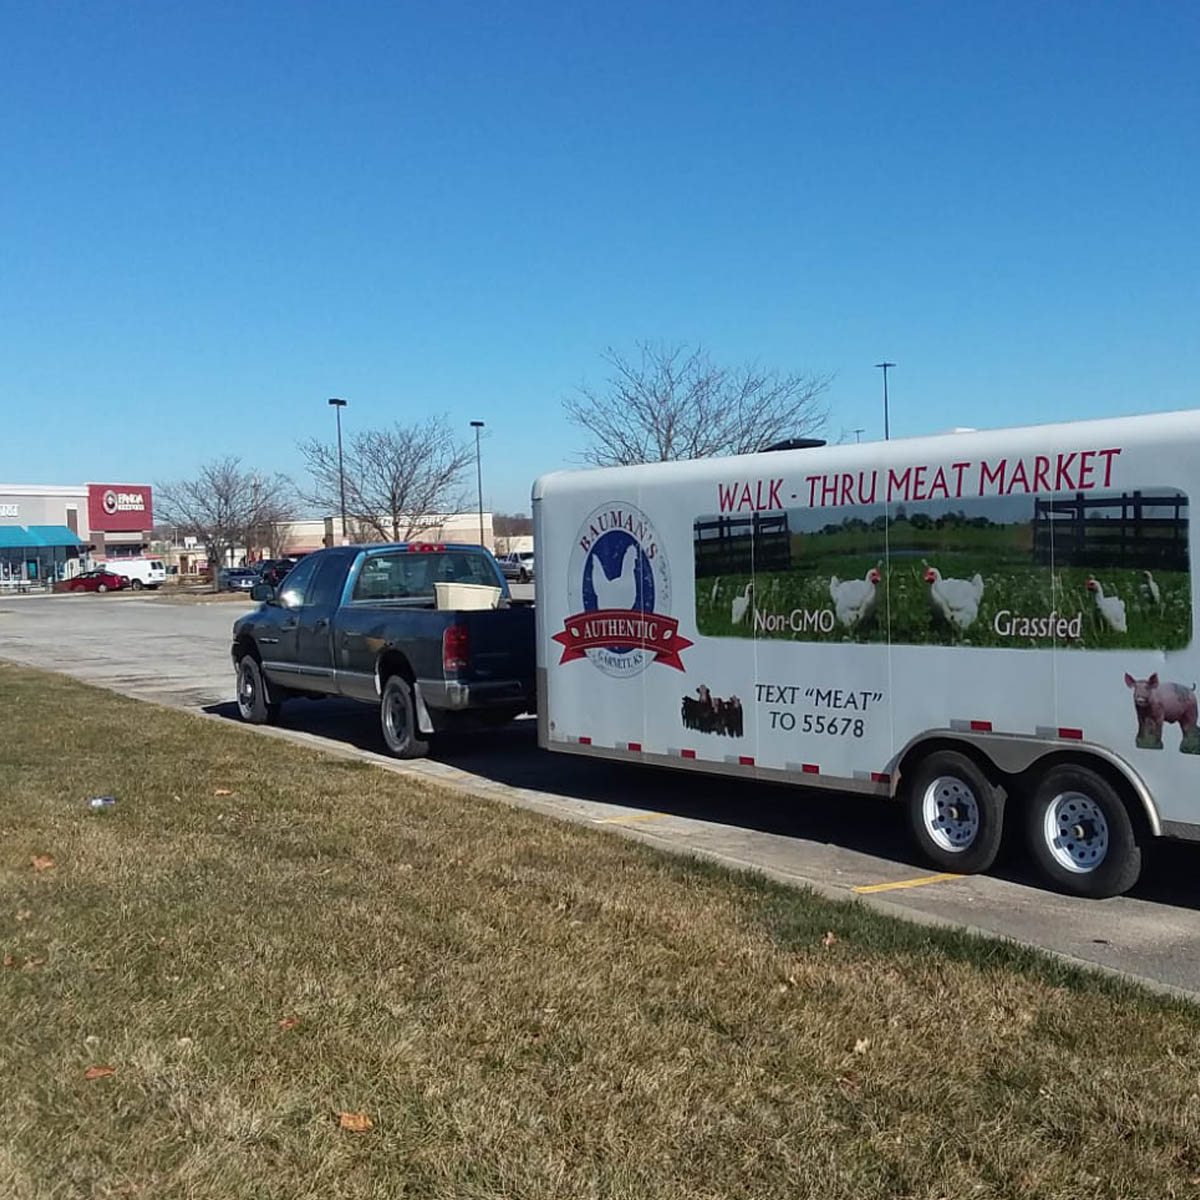 Bauman's Mobile Meat Market is in Lawrence, Kansas every other Thursday from 12:30-1:30 PM at 33rd and Iowa Streets